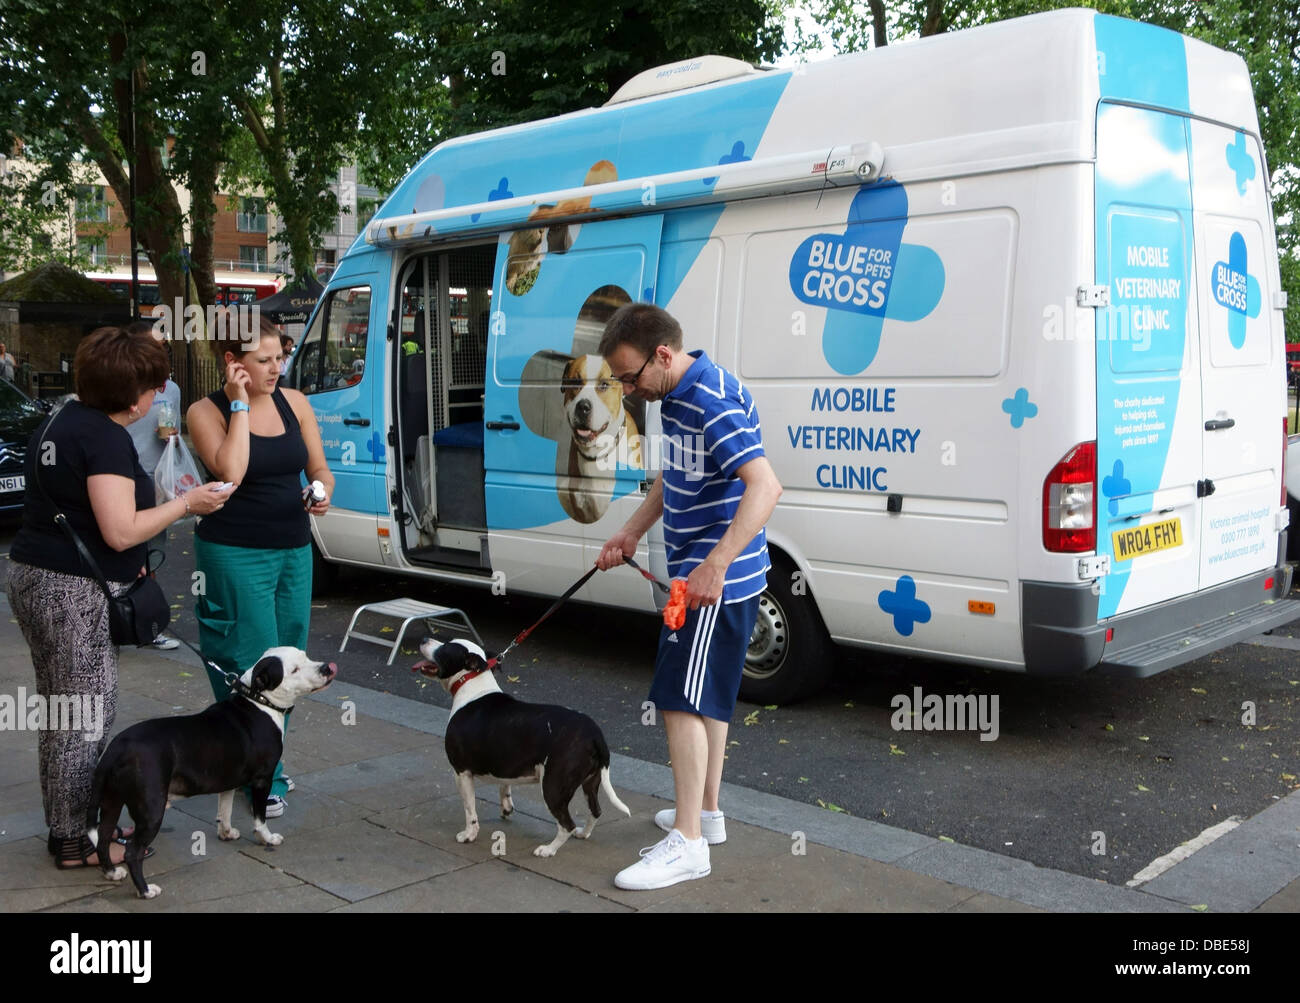 Blue Cross mobile veterinary clinic parked by Islington Green, London - Stock Image